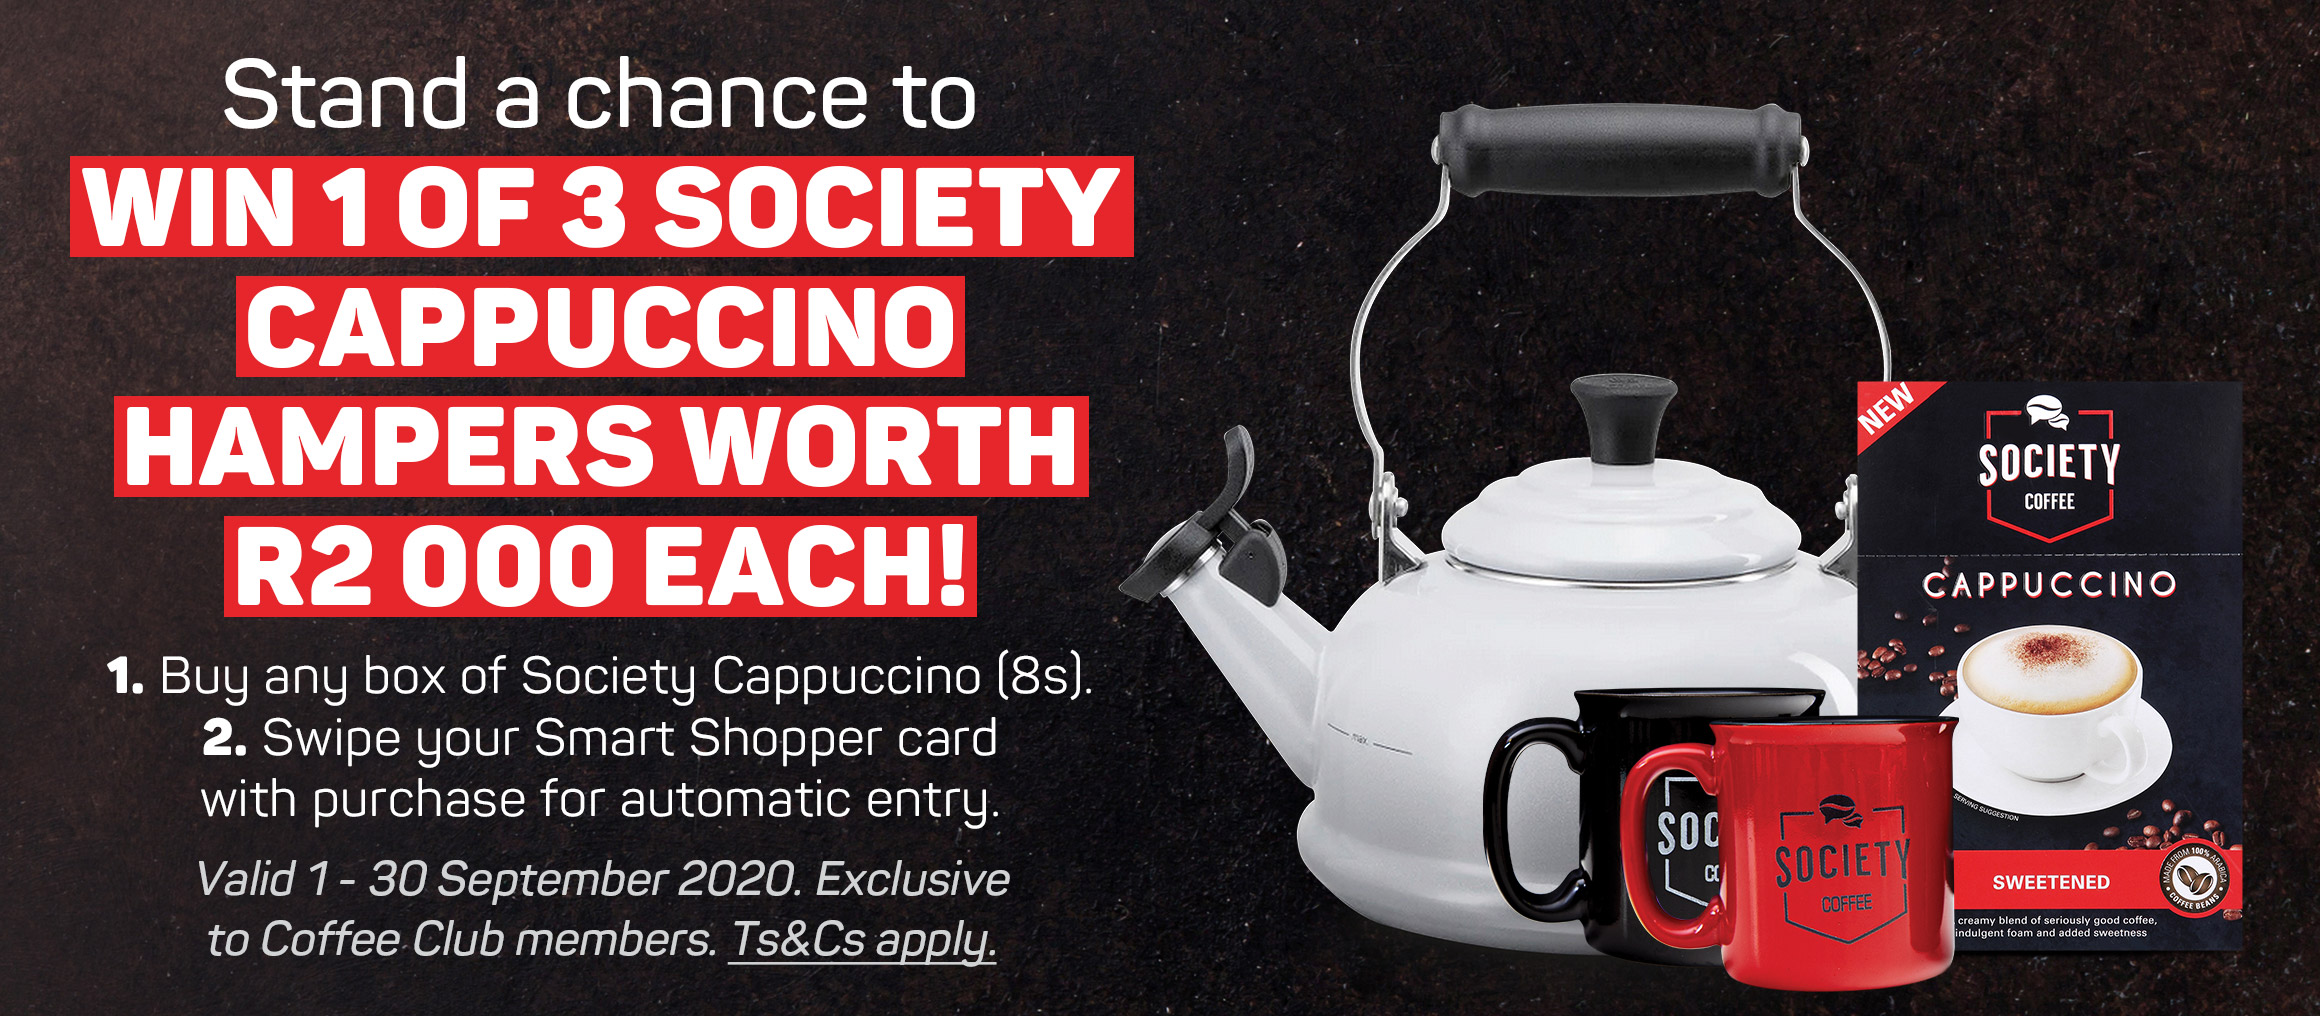 Stand a chance to win 1 of 3 society cappucino hampers worth R200 each